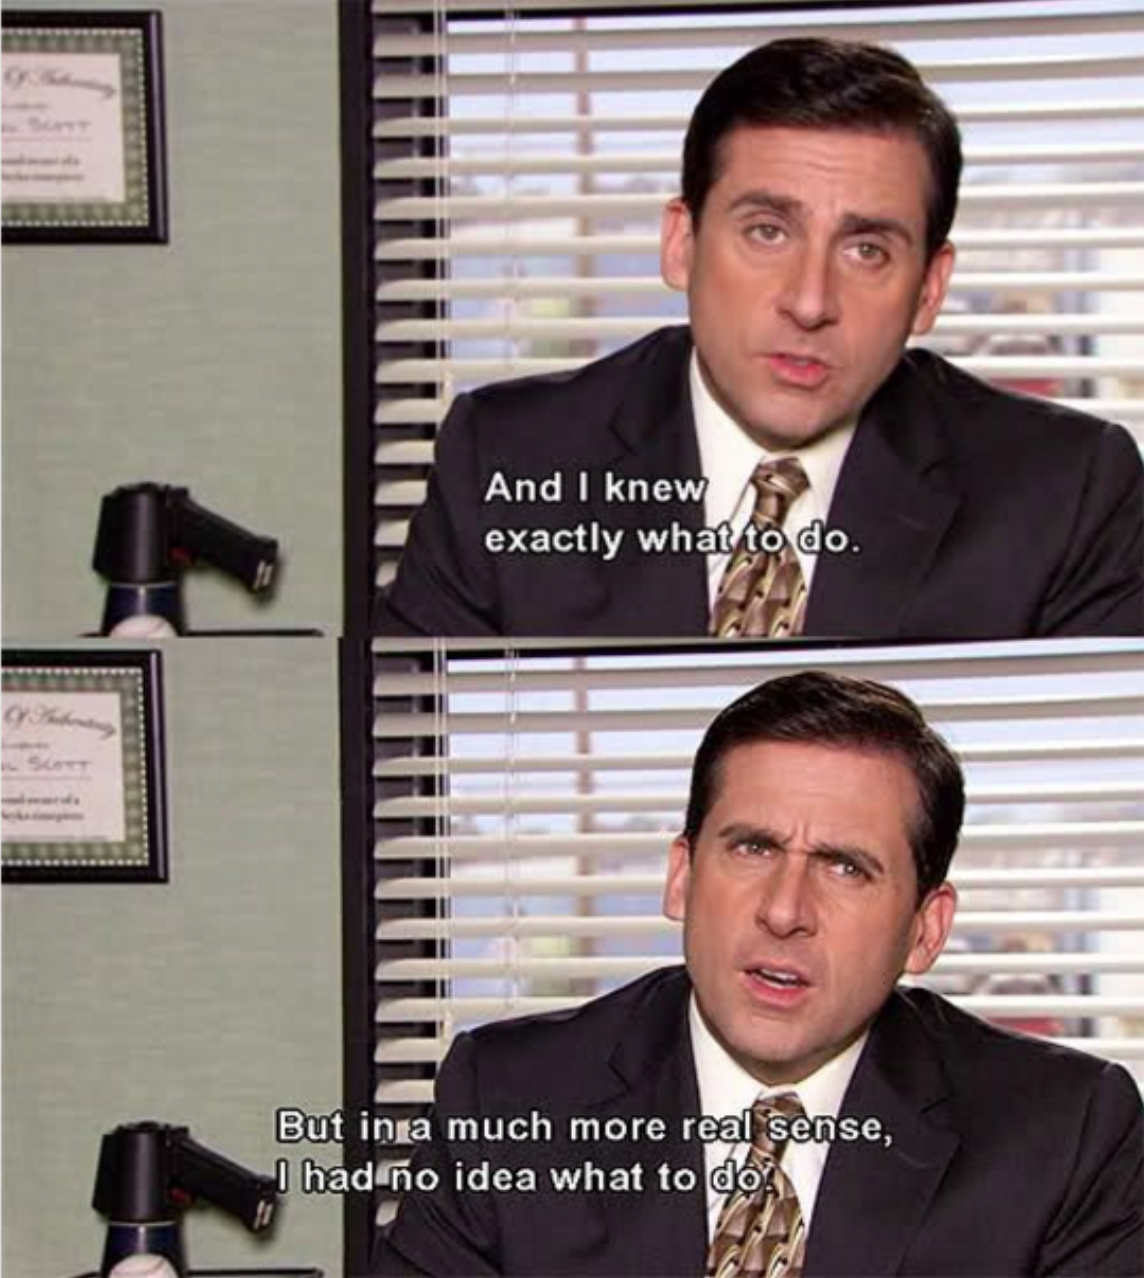 """A meme from 'The Office' saying: """"and I knew exactly what to do, but in a much more real sense, I had no idea what to do"""""""